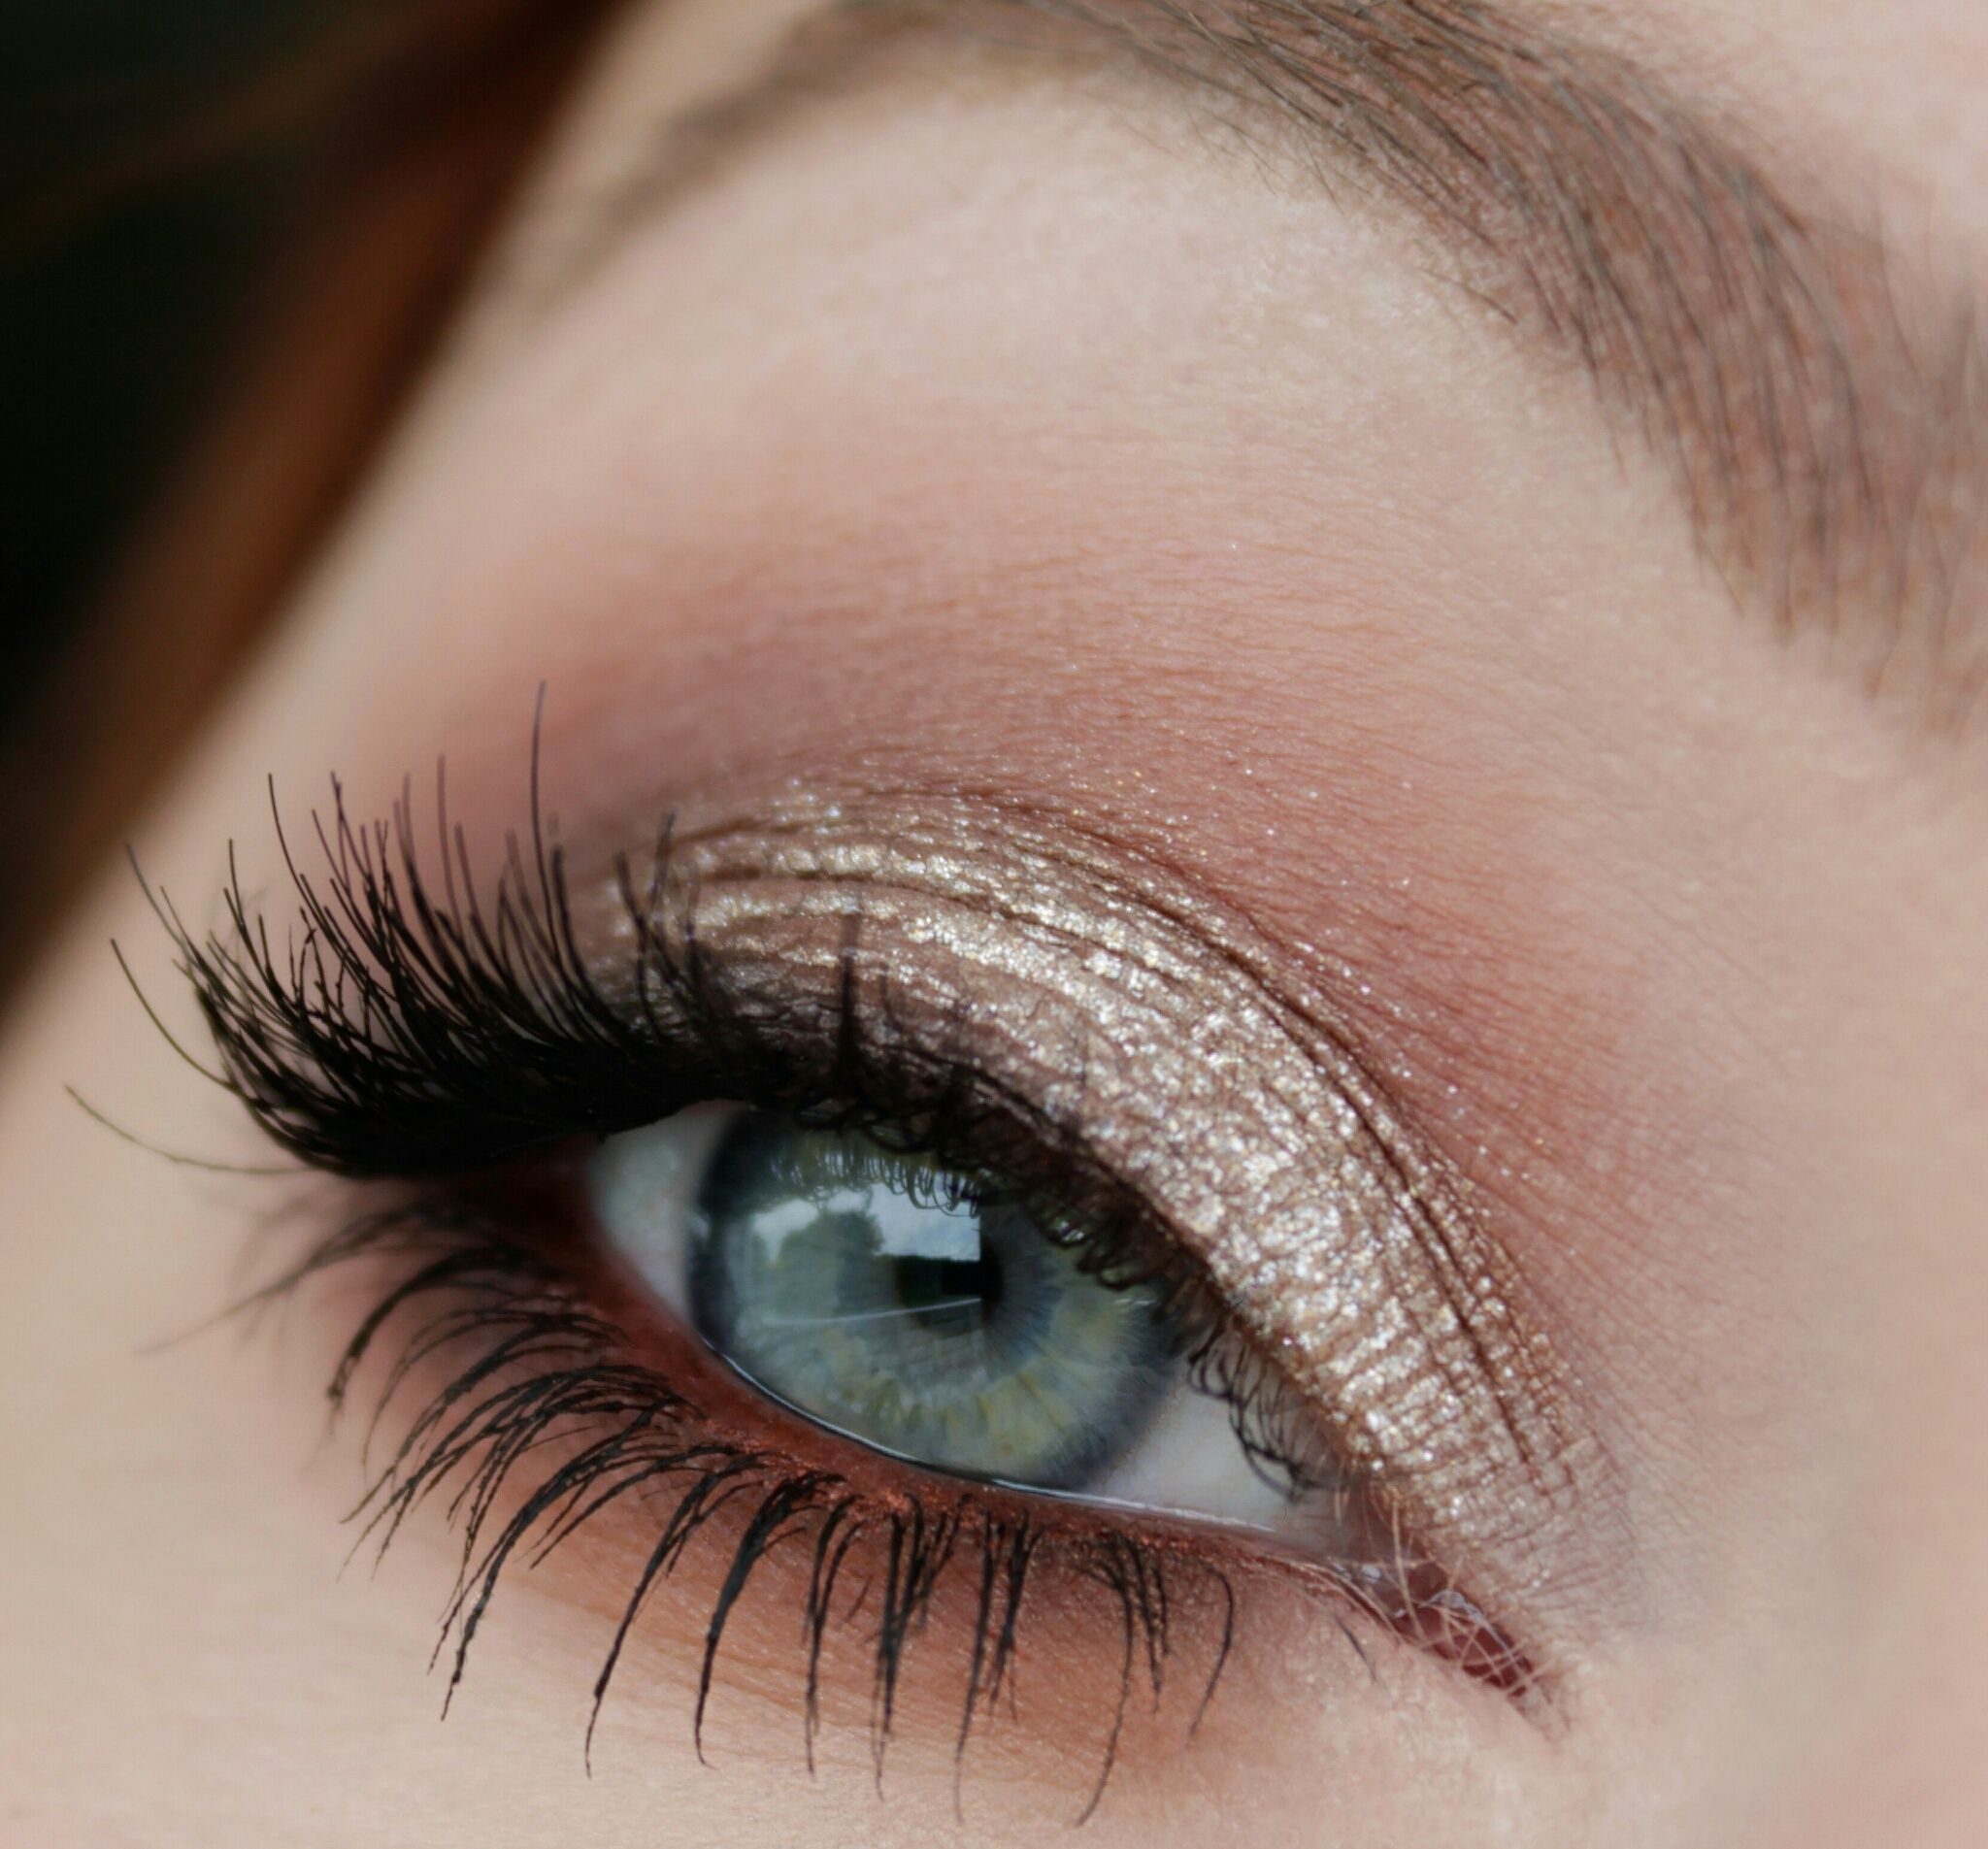 Warm neutral glam makeup tutorial swiss chocolate maybelline watch makeup video tutorials learn tips from the experts and even buy our makeup online all items ship worldwide and are paraben free baditri Image collections